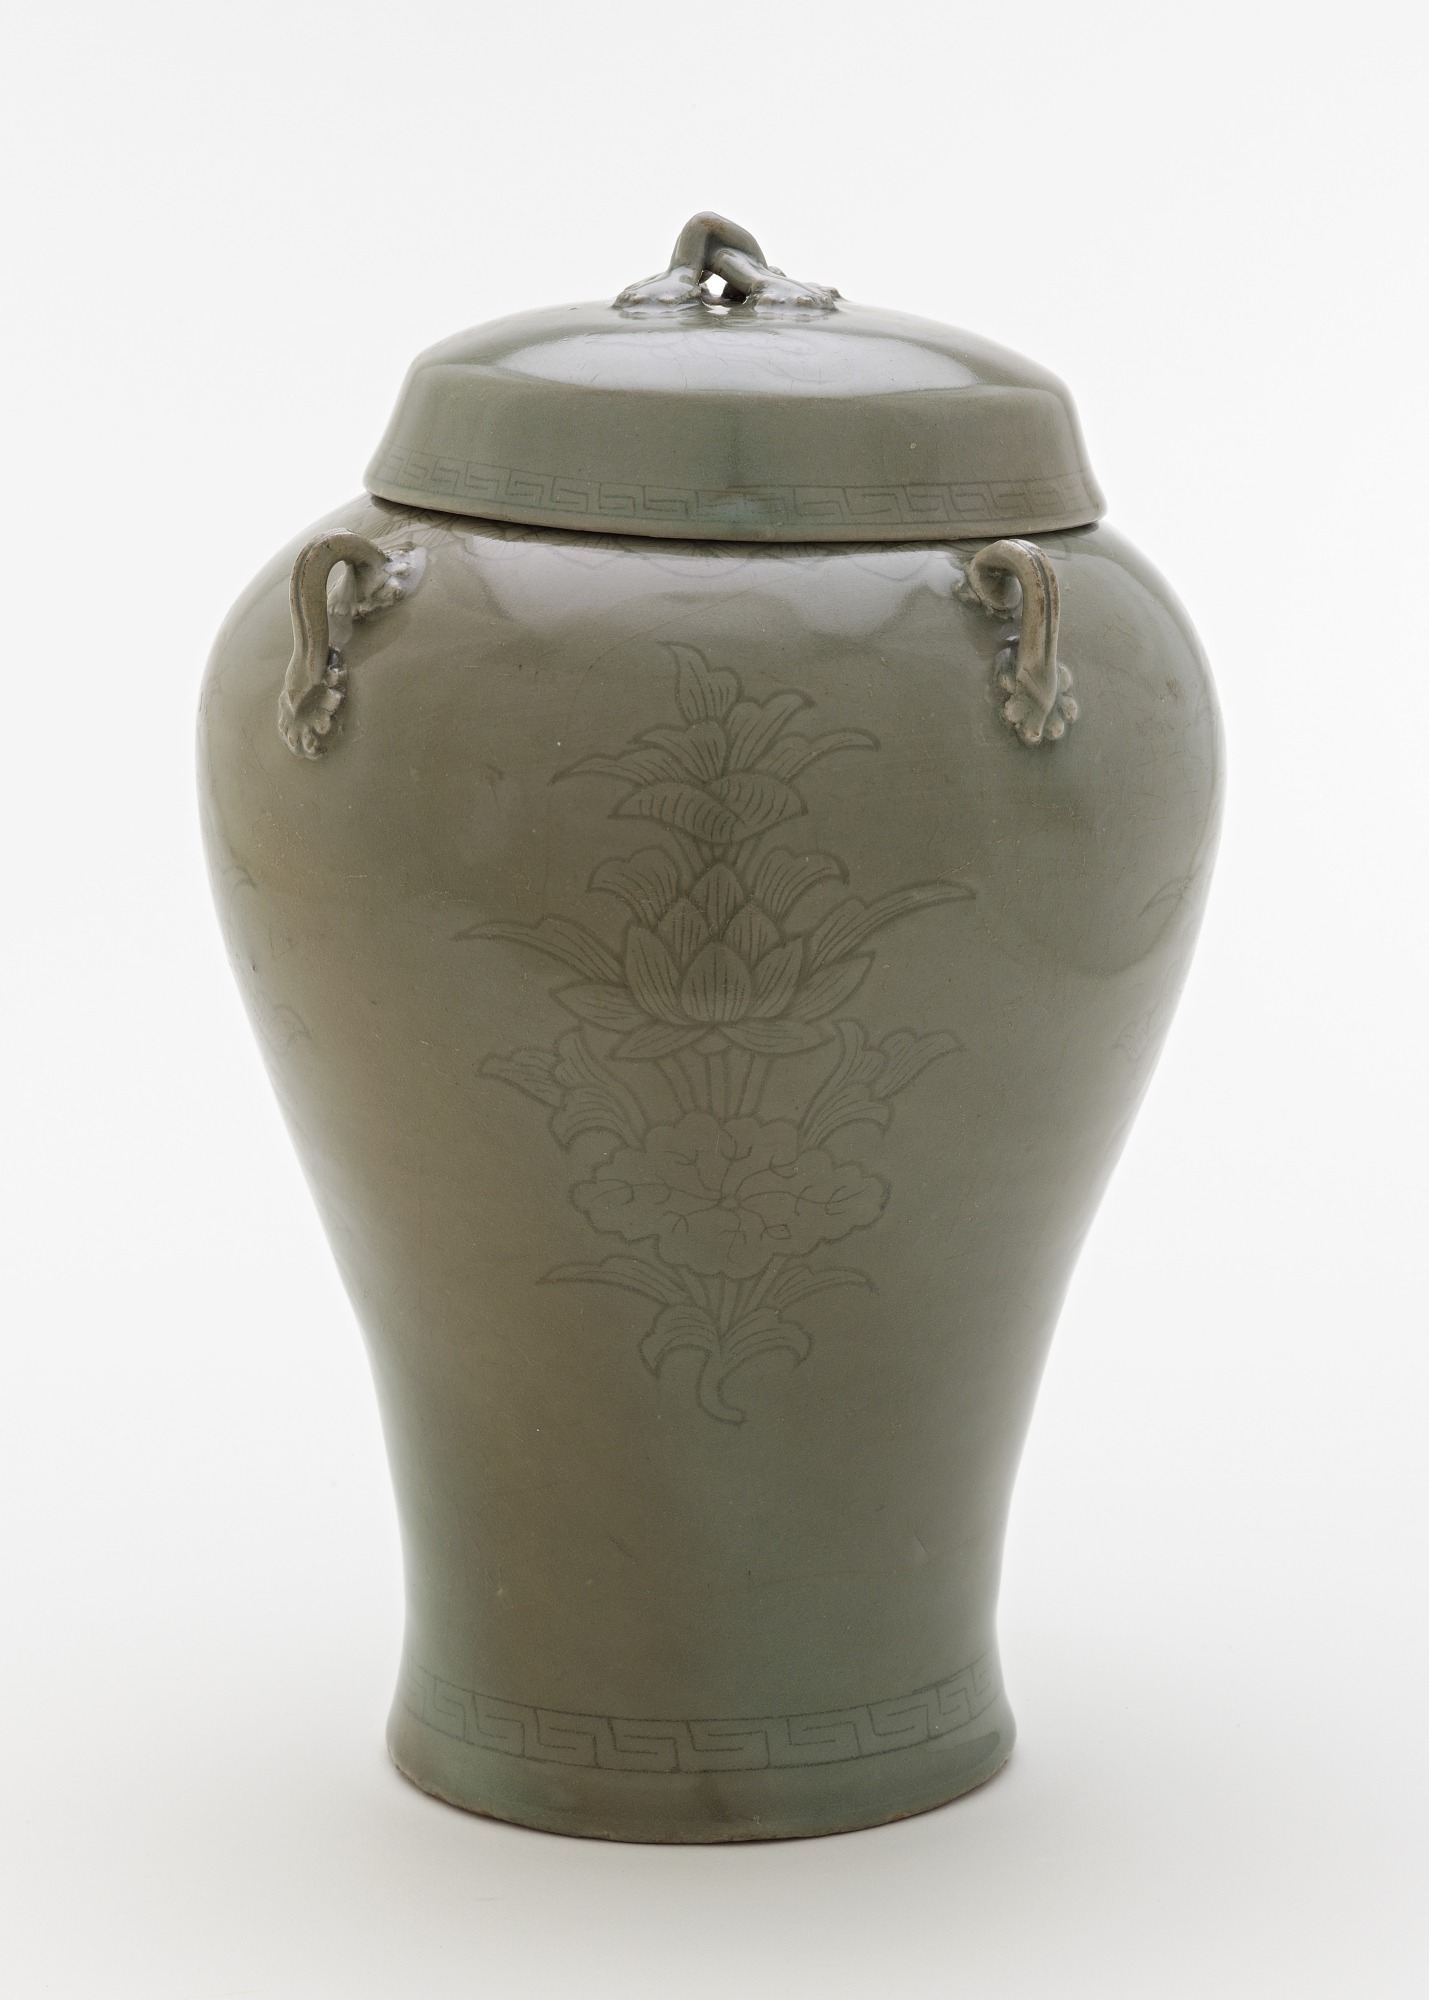 profile with lid